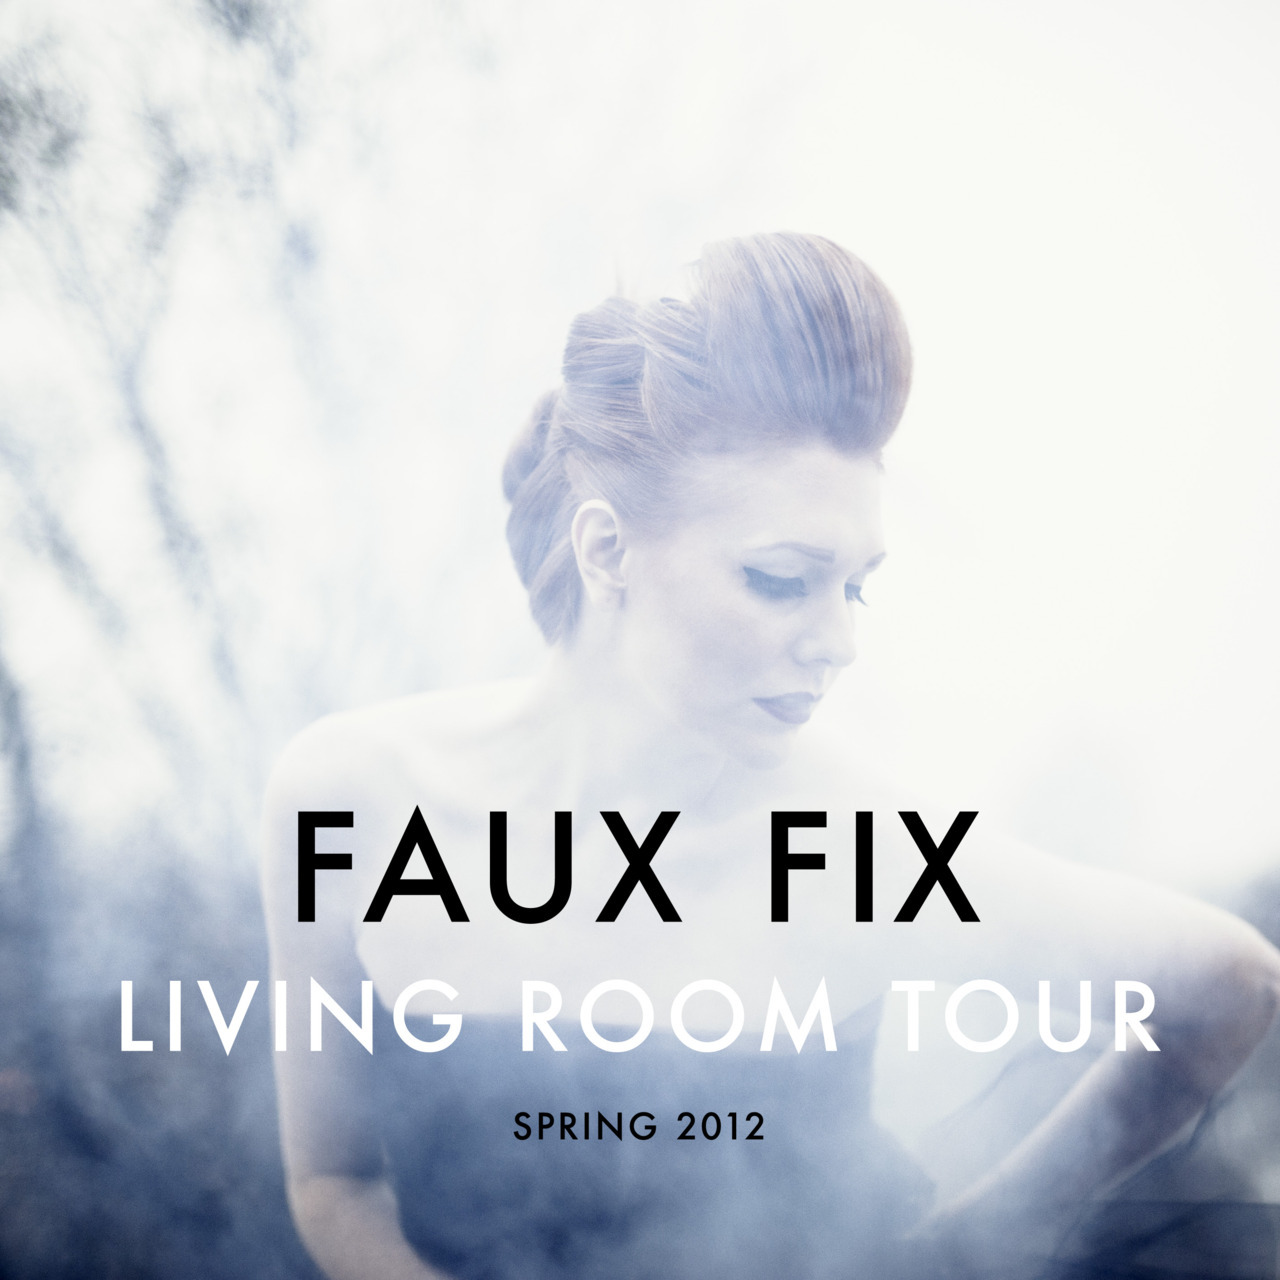 Faux Fix Living Room Tour - Spring 2012 We're excited to announce our upcoming Living Room Tour dates! We've been transforming our new album into a unique & cozy live experience featuring lush textures, electronic samples, and even tuned wineglasses, thanks to multi-instrumentalist Jonny Rodgers (who will be touring with us and also opening a number of the shows!) This is a special string of intimate Living Room Shows (unless otherwise noted*) and seating will be extremely limited - most will be attended by invite only. If you are near any of these cities and are interested in coming to a show, please contact fauxfixmusic@gmail.com for details. We hope to see you there! 3/14 - New Haven, CT - Limited Seating - Reserve Soon! - RSVP HERE 3/15 - New Haven, CT - Limited Seating - Reserve Soon! - RSVP HERE 3/16 - Fairfax, VA 3/17 - Rock Hill, SC 3/18 - Knoxville, TN 3/19 - Nashville, TN (The Contemporary Music Center)* 3/20 - Lexington, KY 3/21 - Indianapolis, IN 3/22 - Chicago, IL (Saki Record Store)* no reservations necessary 3/23 - Milwaukee, WI 3/24 - Chicago, IL 3/26 - Grand Rapids, MI (Calvin College)* no reservations necessary 3/27 - Cleveland, OH 3/28 - Grantham, PA (Messiah College)* no reservations necessary 3/29 - Washington, DC 3/30 - New Castle, DE 3/31 - Brooklyn, NY These shows are east coast/mid west, but we're hoping to expand our cities further on the next tour. If you'd like us to come to your town (or play in your living room!) at a future date, let us know via email fauxfixmusic@gmail.com